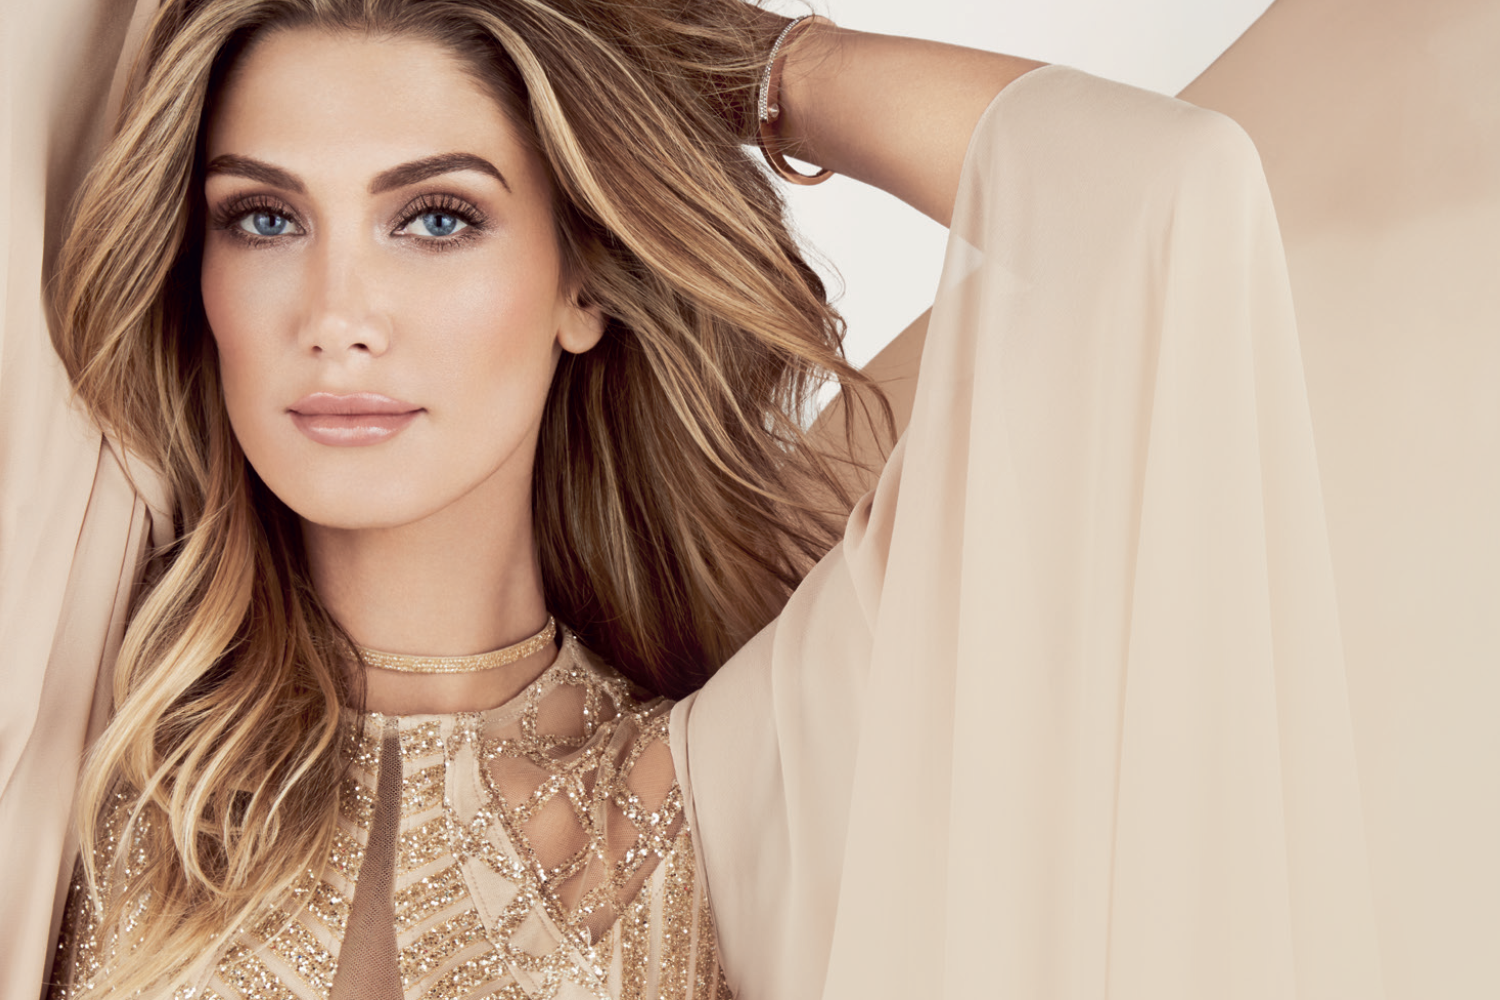 DELTA GOODREM BREAKS FRAGRANCE RECORDS